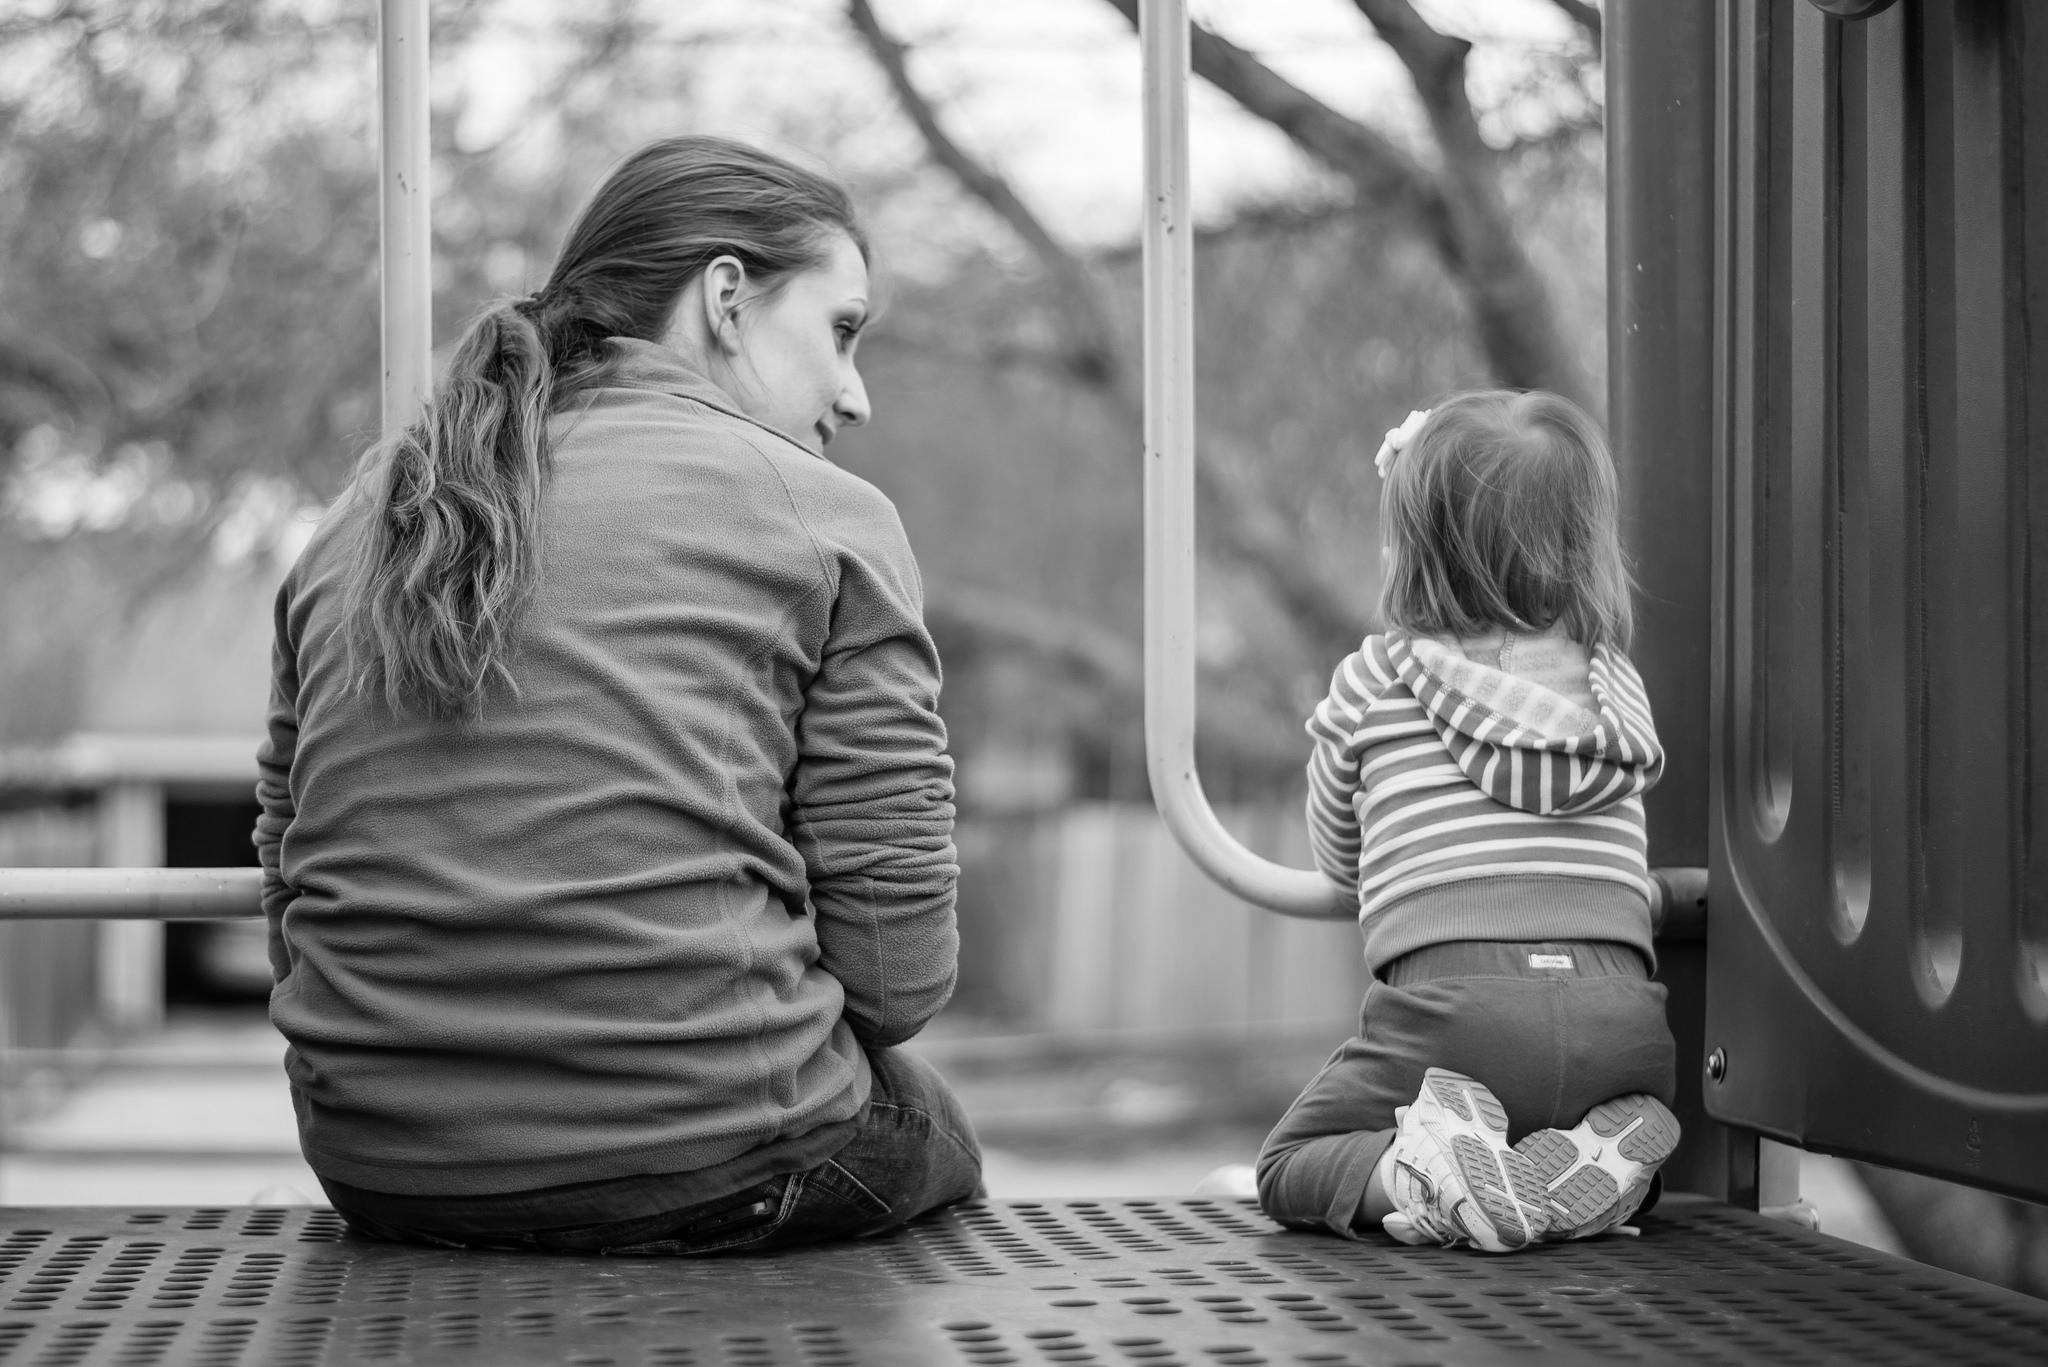 12 alternatives punishment that give parents and children a chance to address situations while maintaining a respectful and peaceful connection.